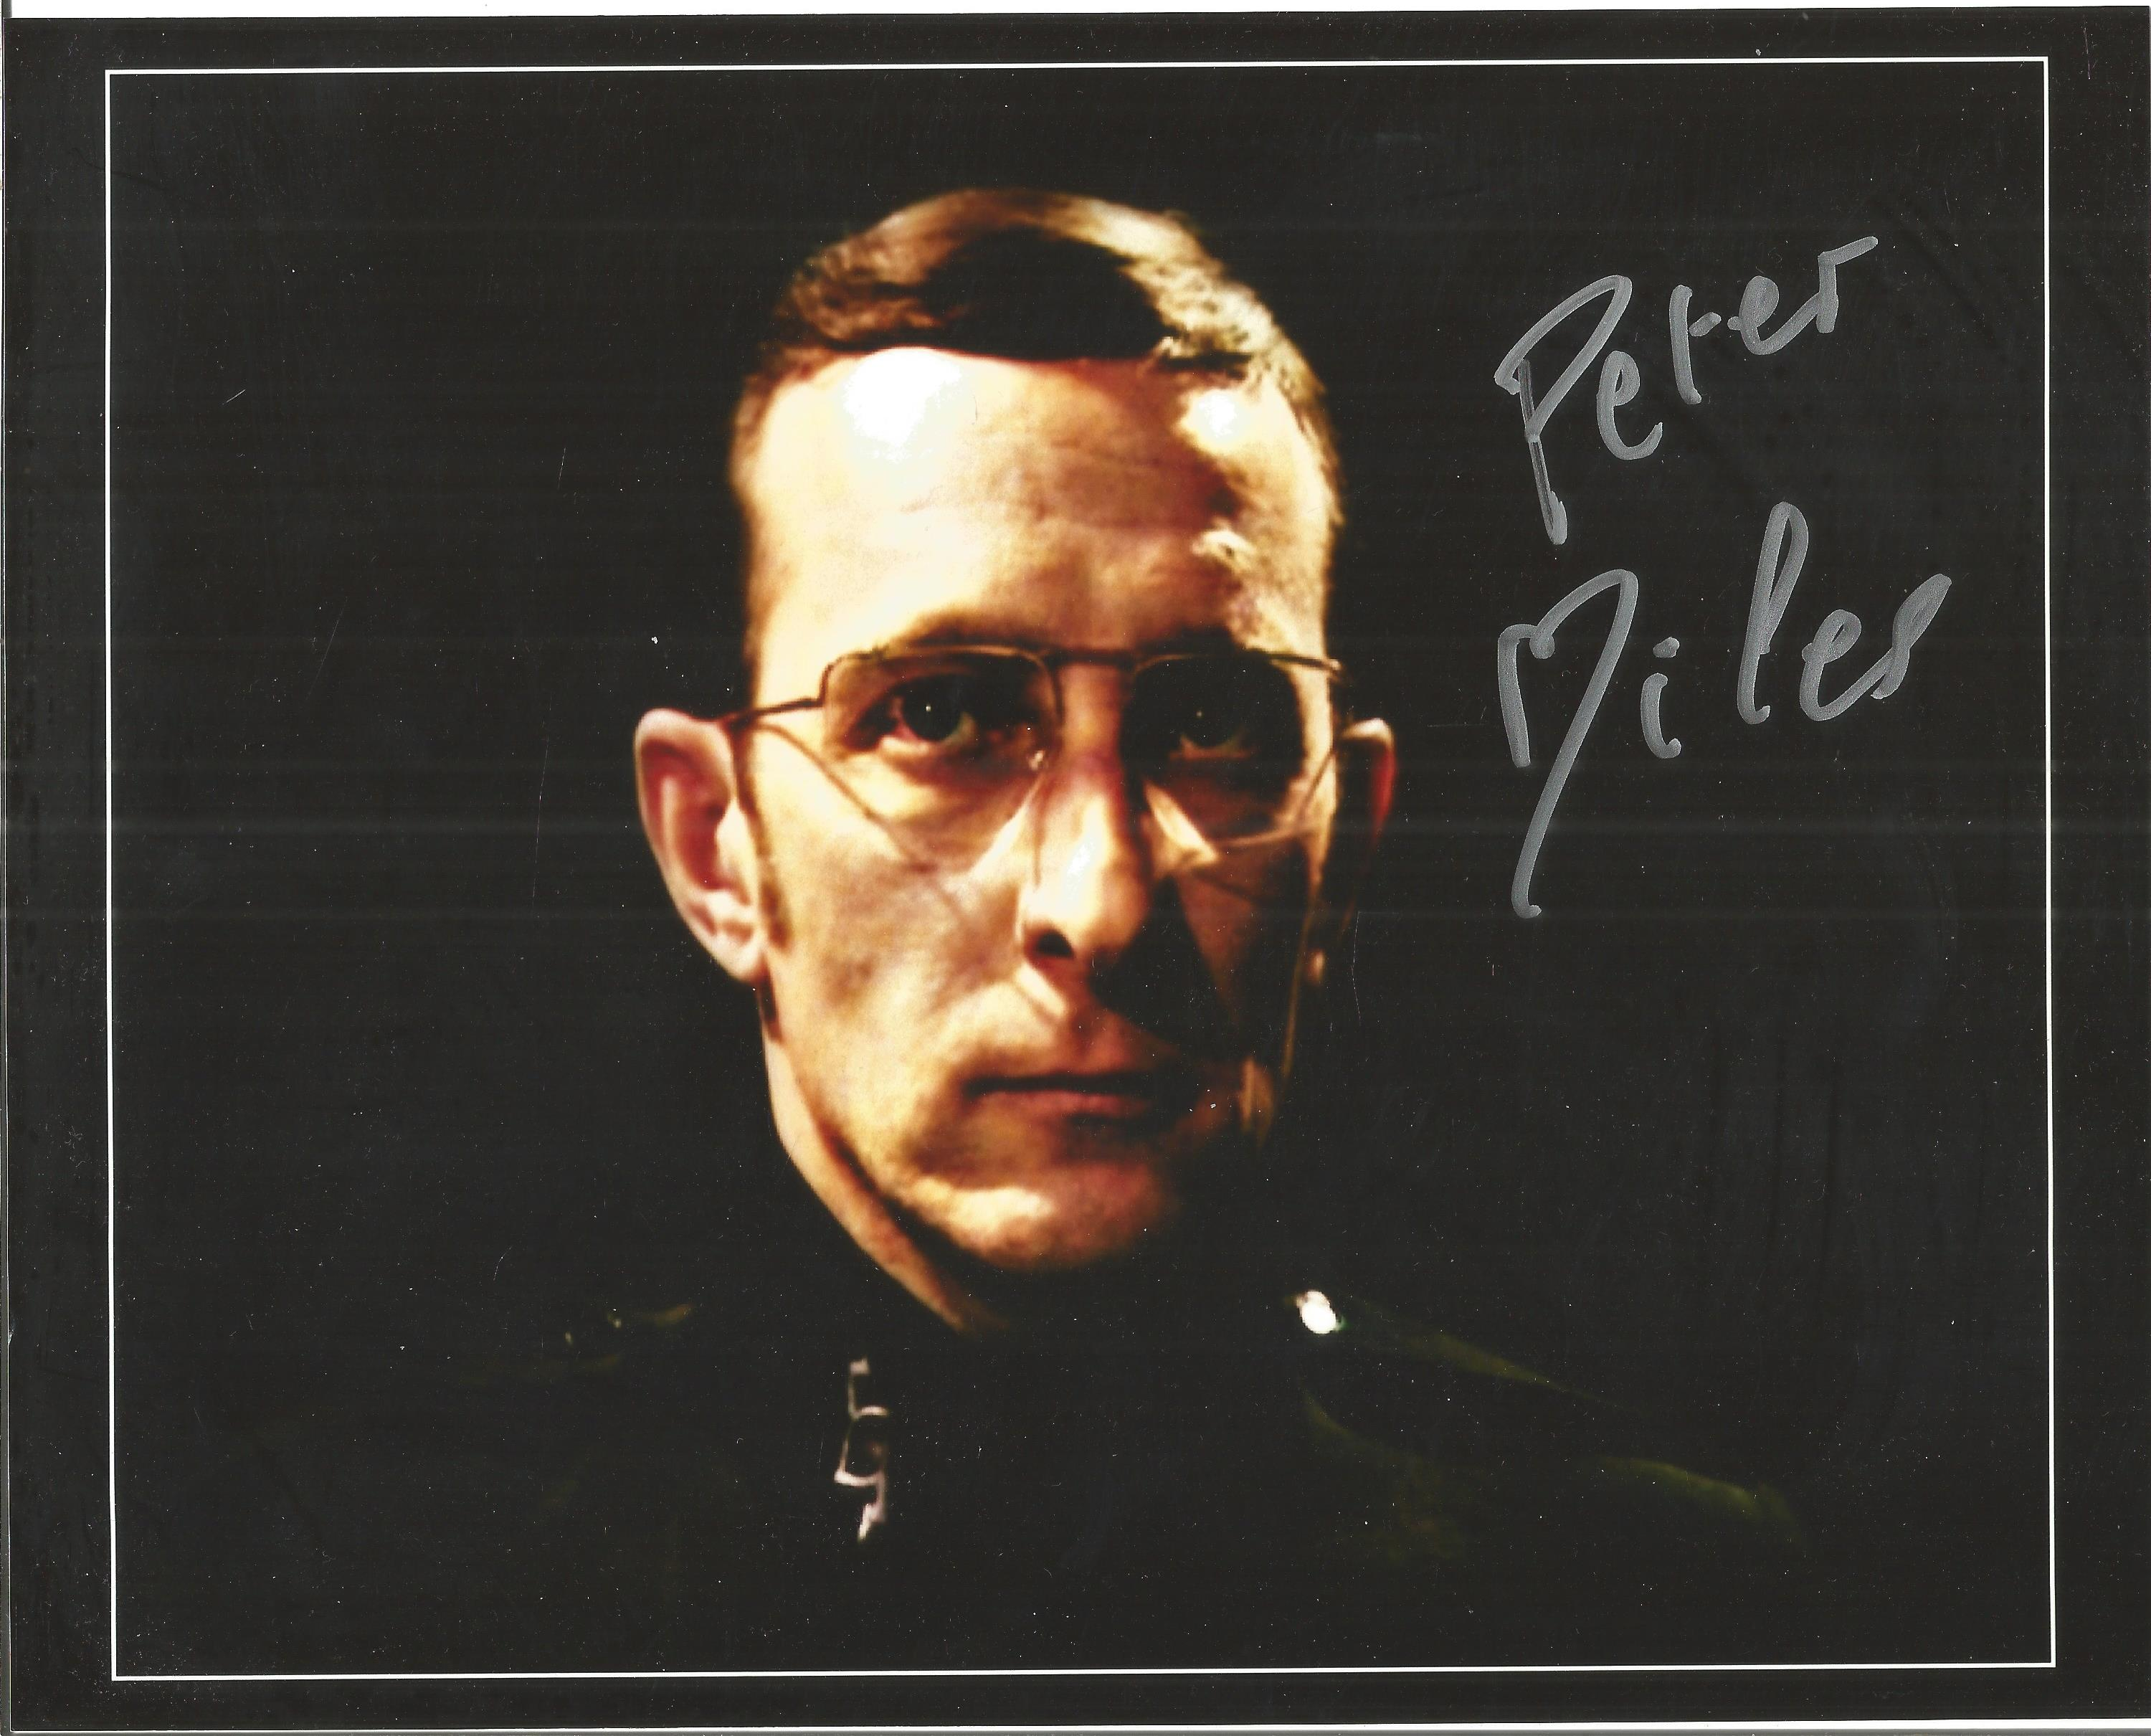 Peter Miles signed 10x8 colour image. Taken from his time on British television show Doctor Who.